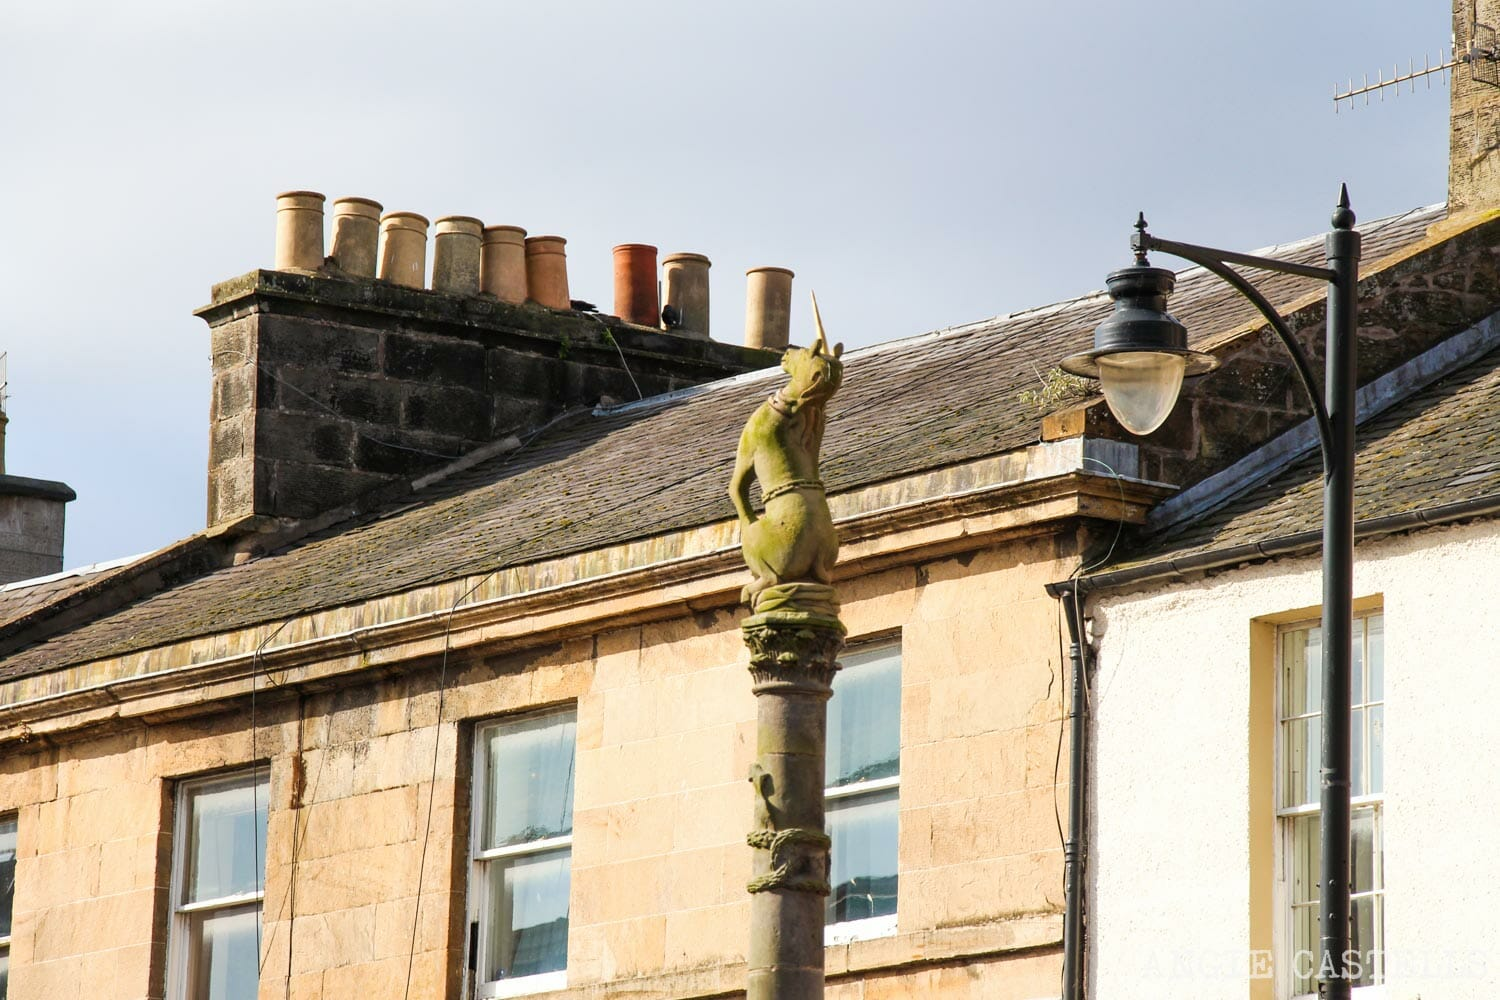 El unicornio, el animal nacional de Escocia - Cupar Mercat Cross